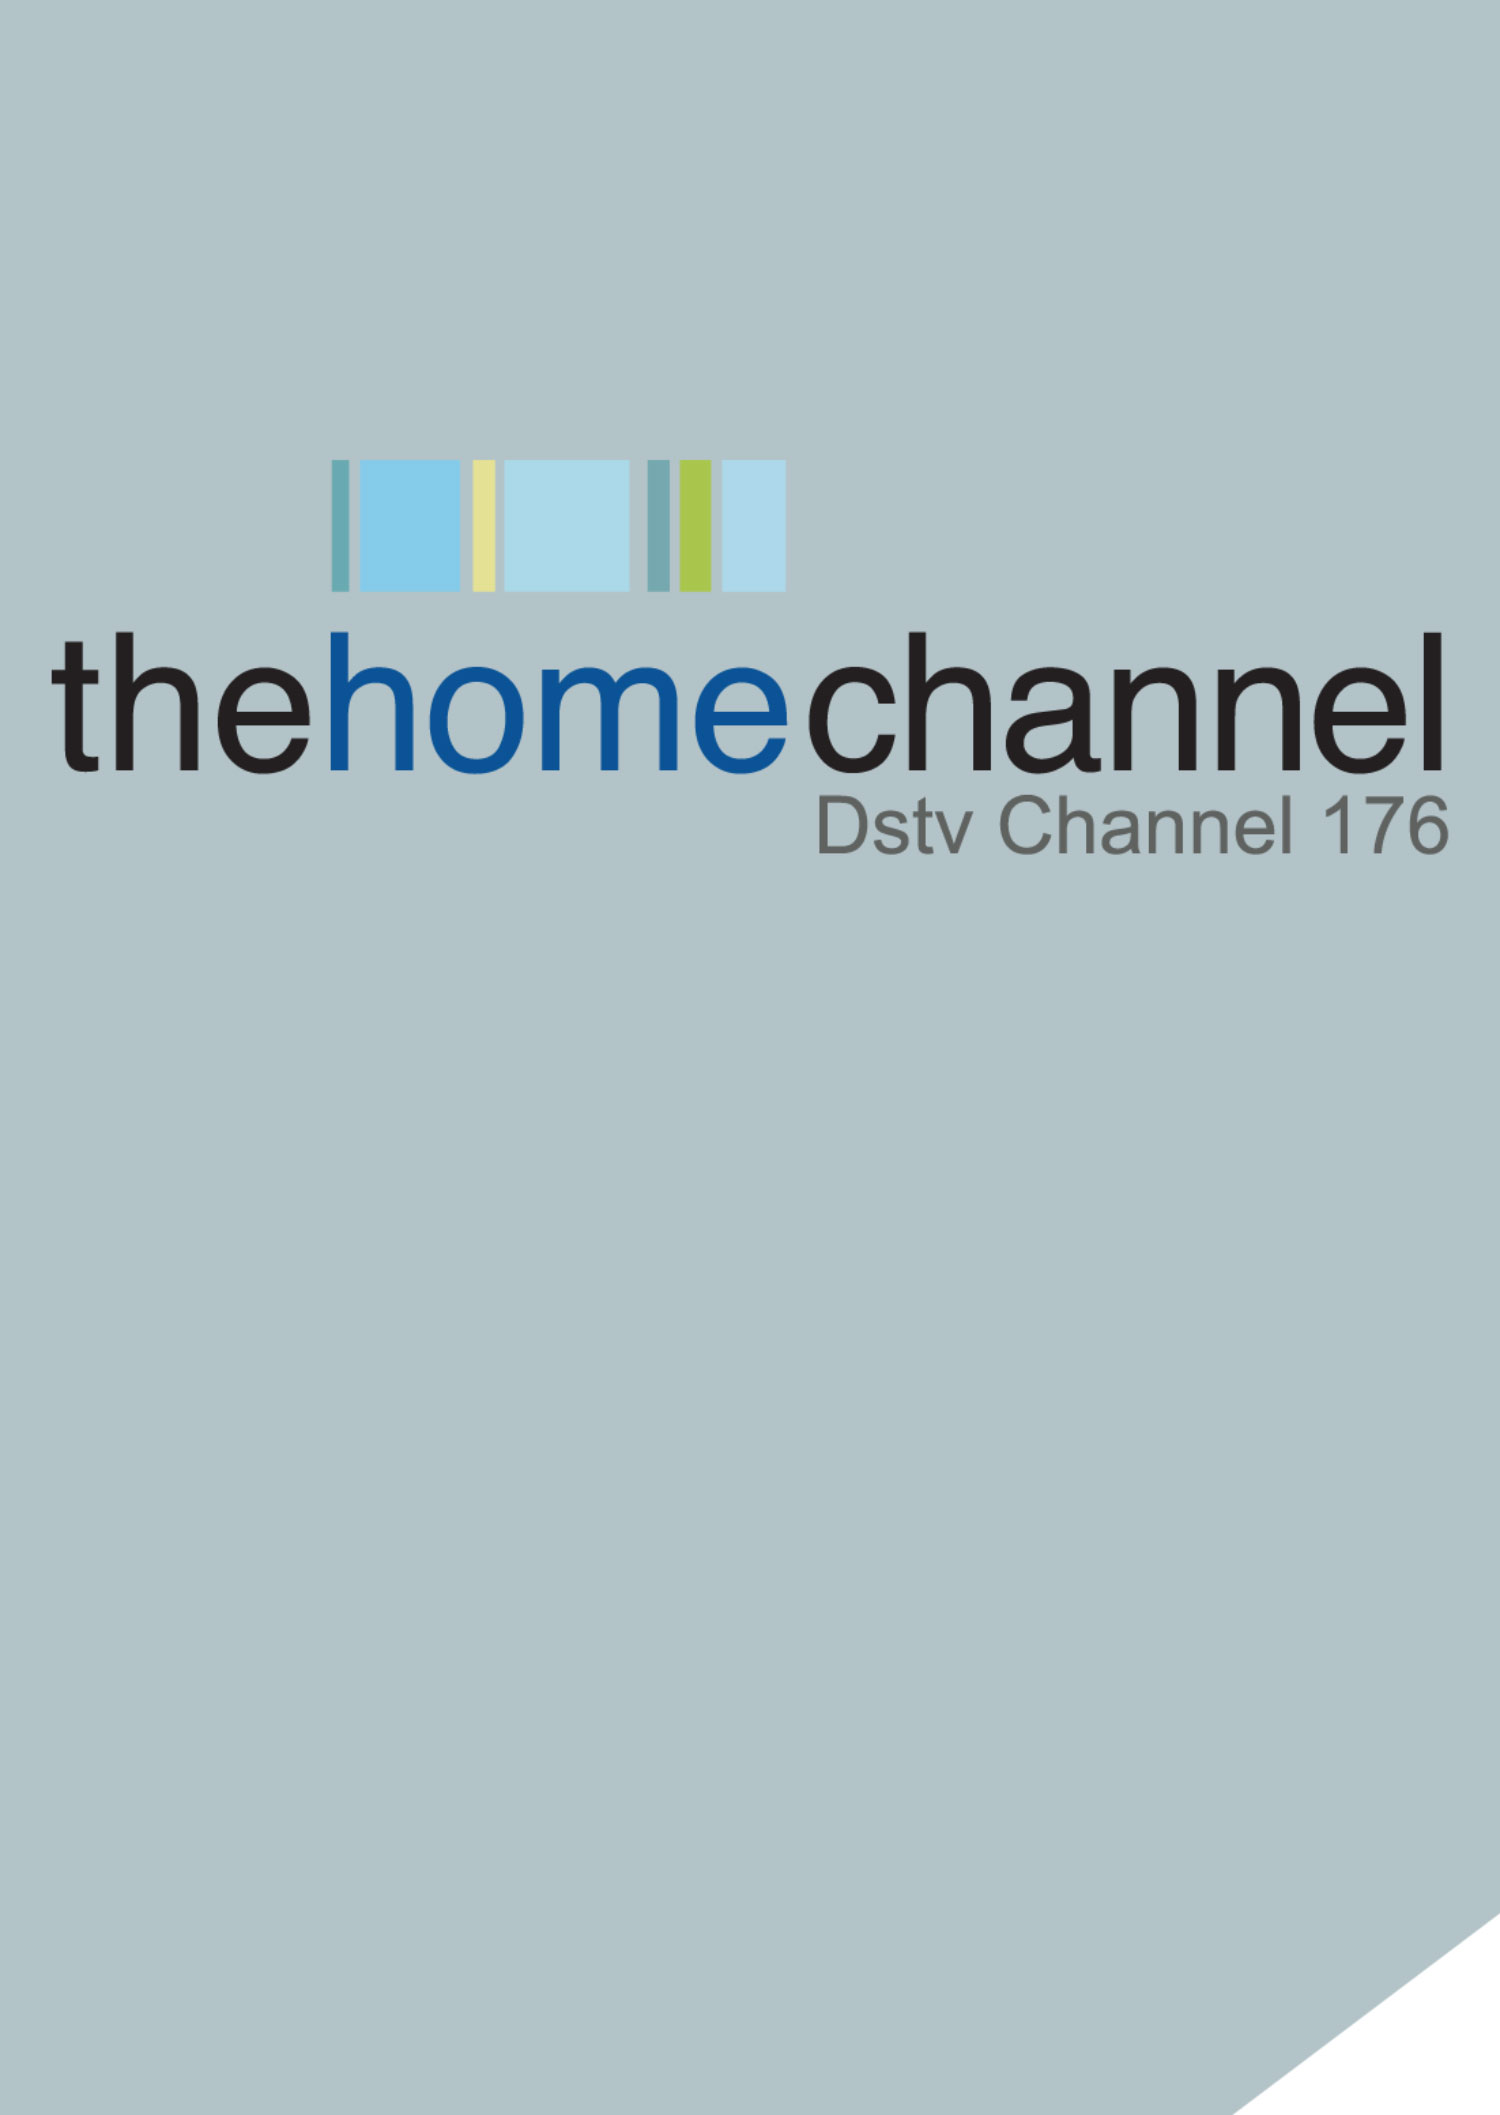 TheHomeChannel_cover_SFW1500.jpg